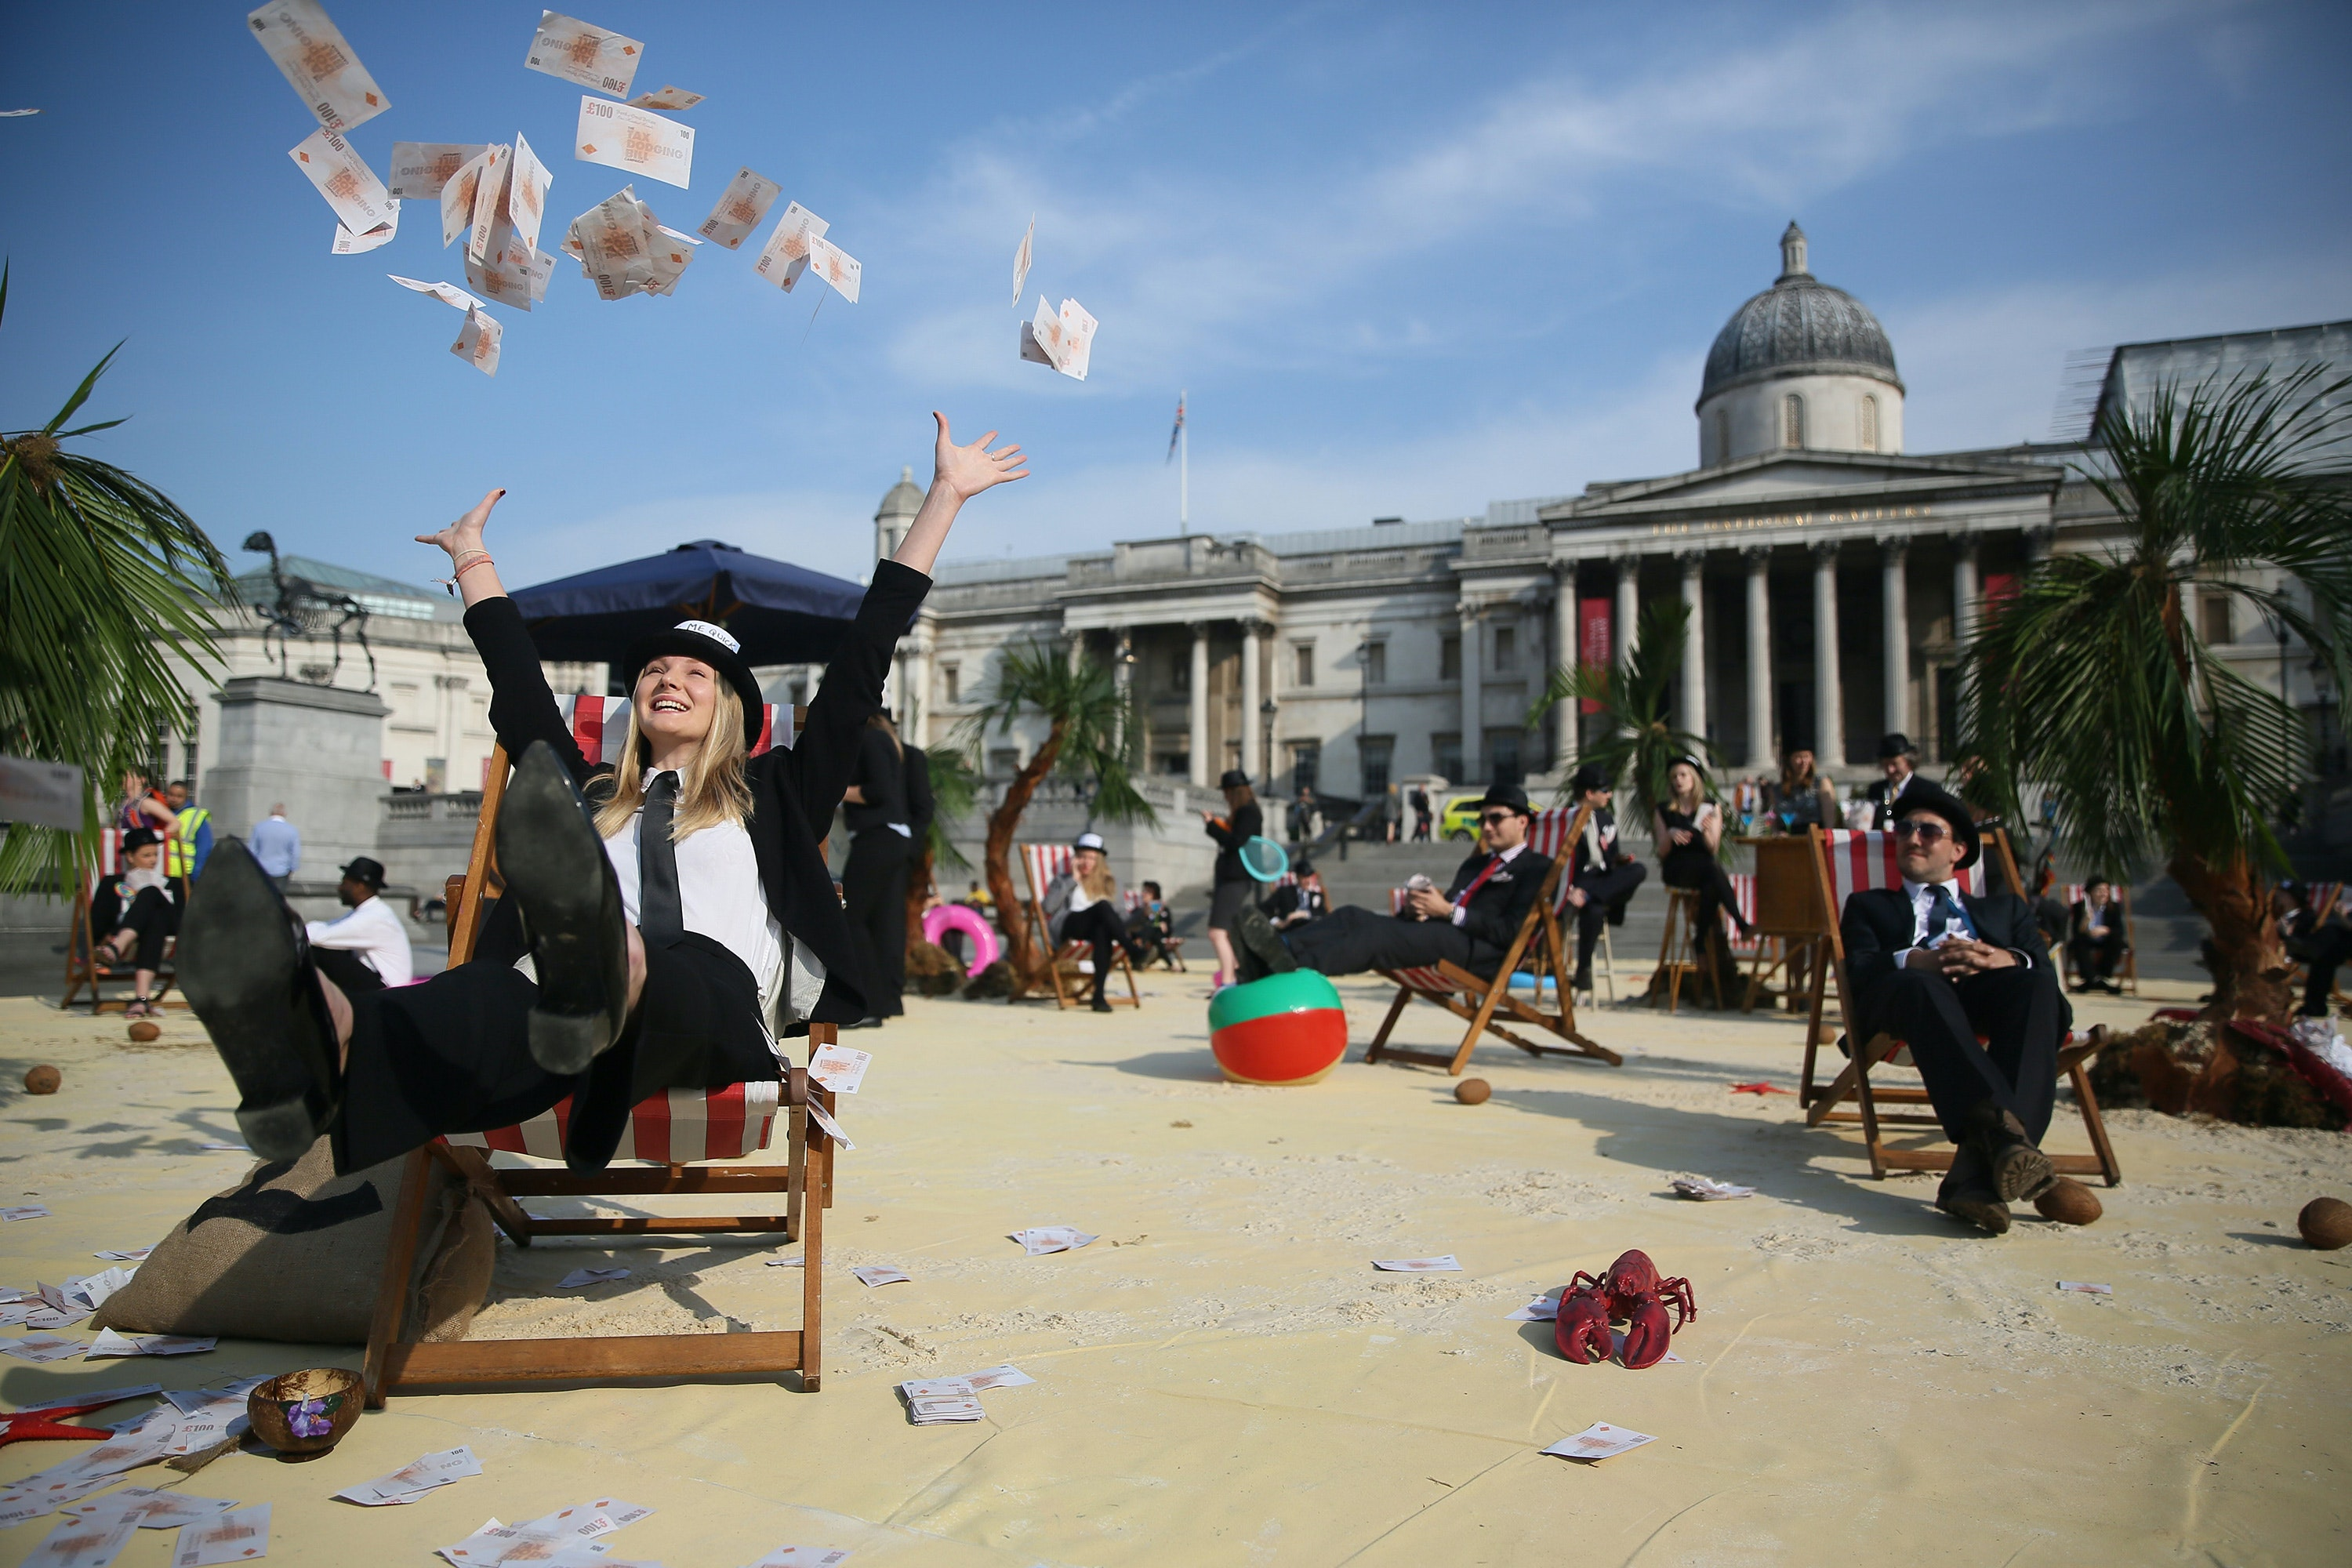 Demonstrators in fancy costume tossing play money in the air